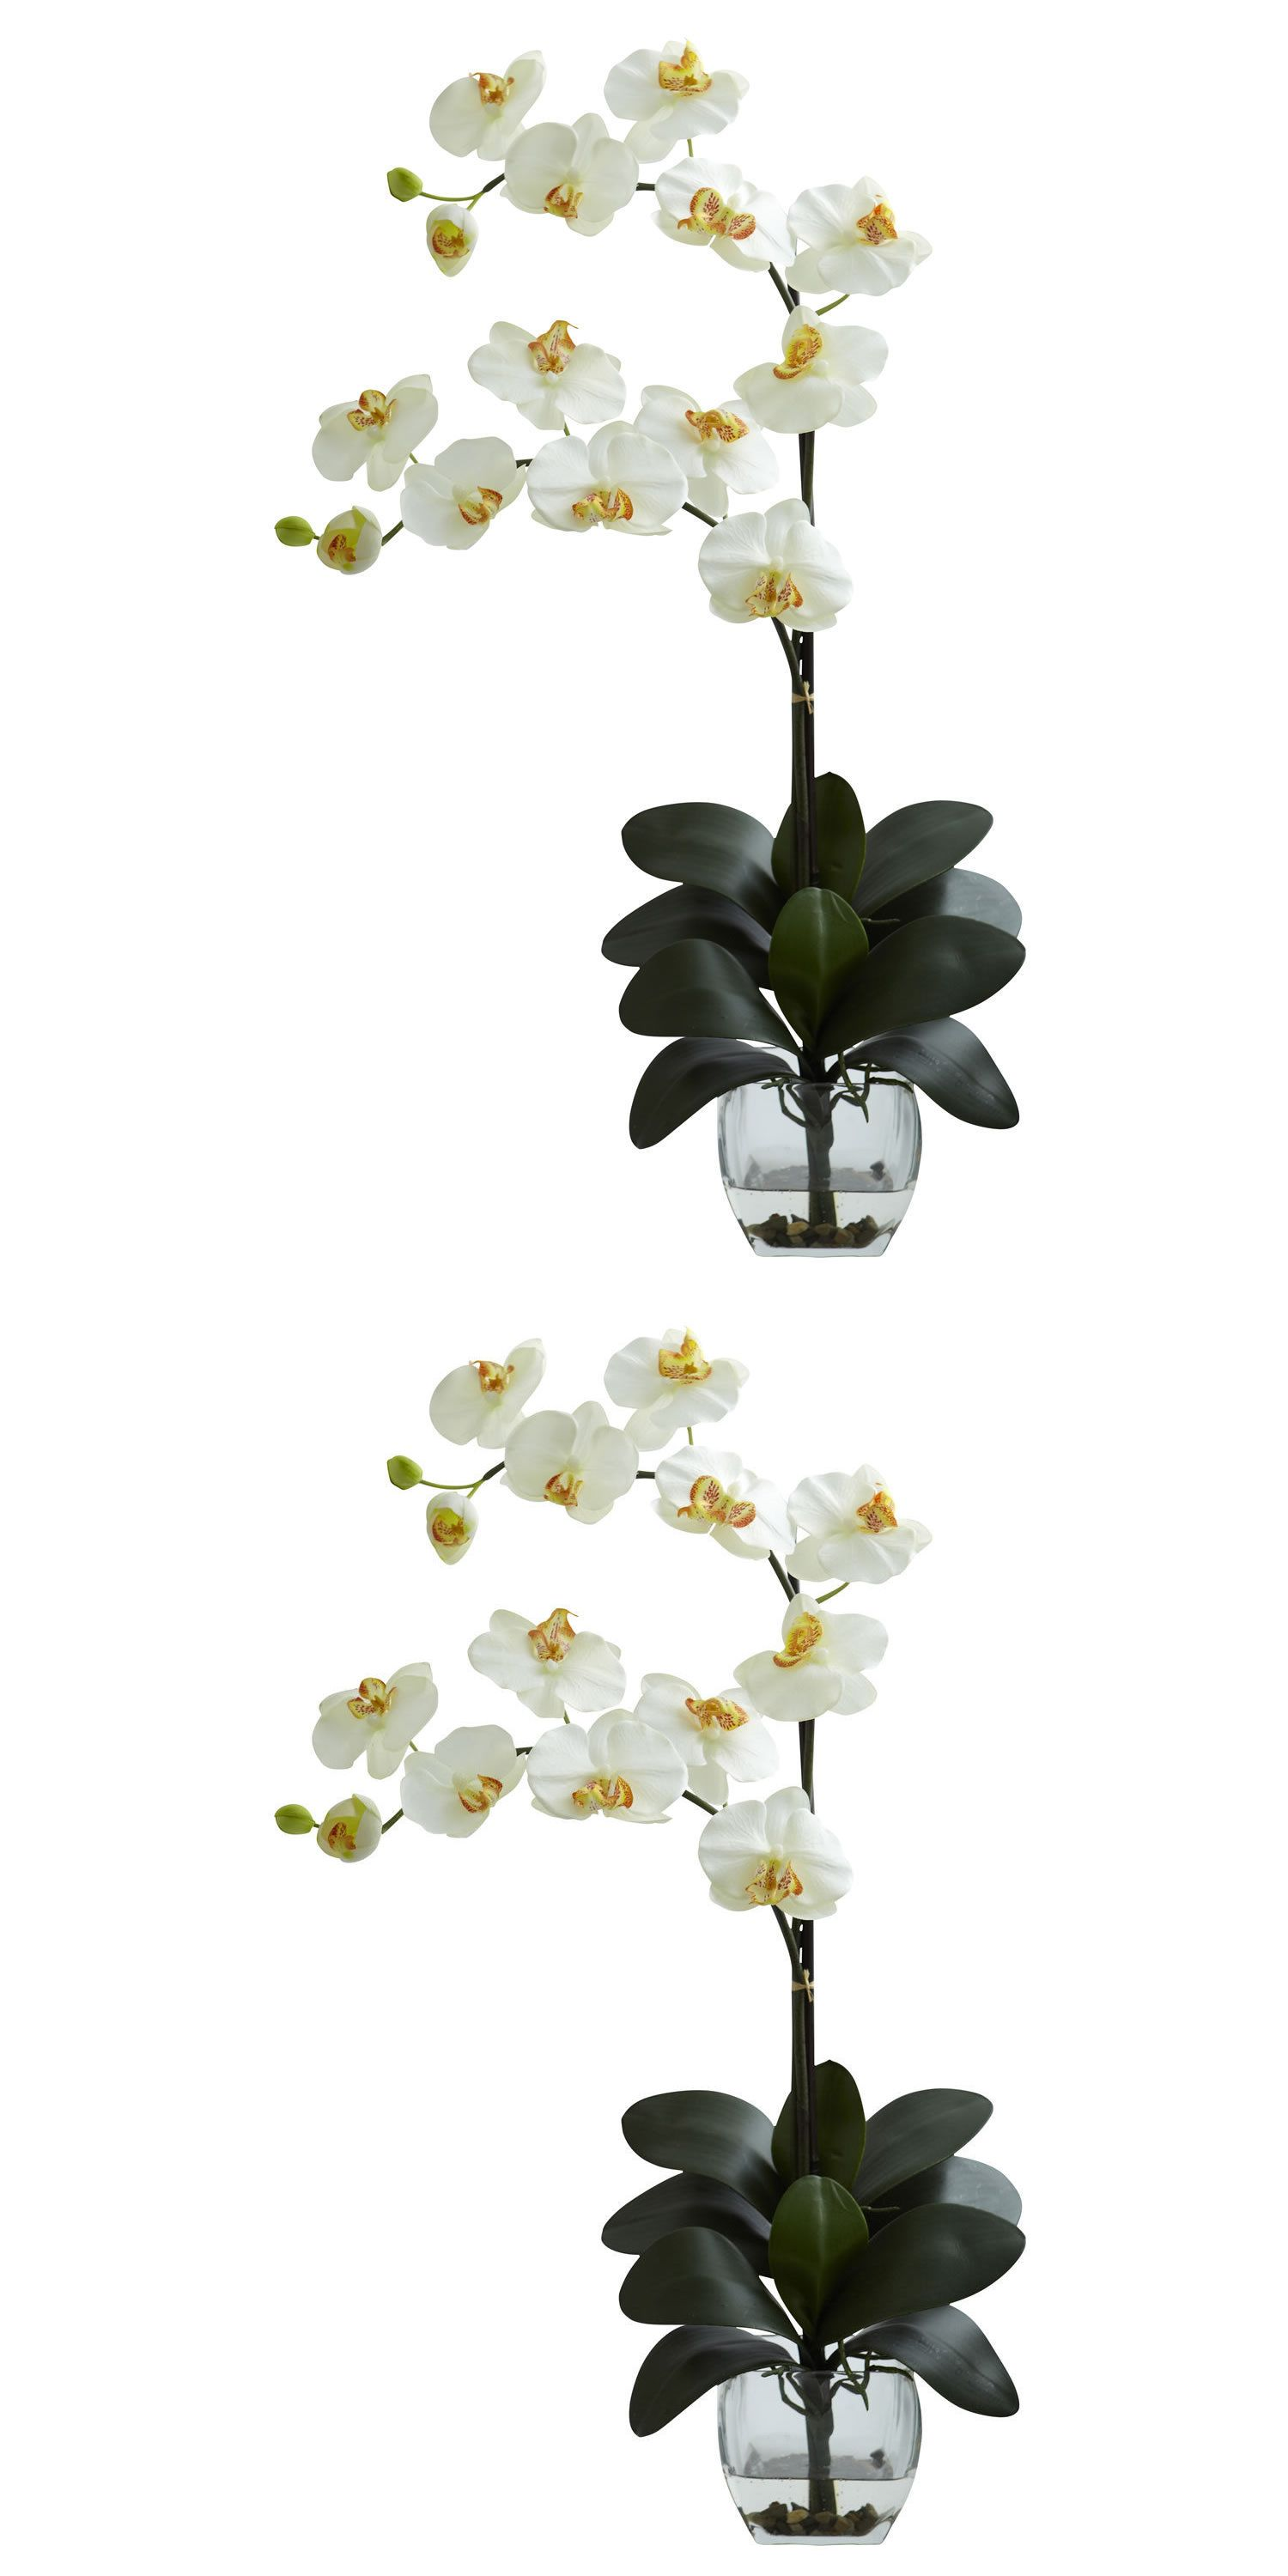 Silk flowers 16494 new double phal orchid vase arrangement craft silk flowers 16494 new double phal orchid vase arrangement craft home decor floral arts silk reviewsmspy